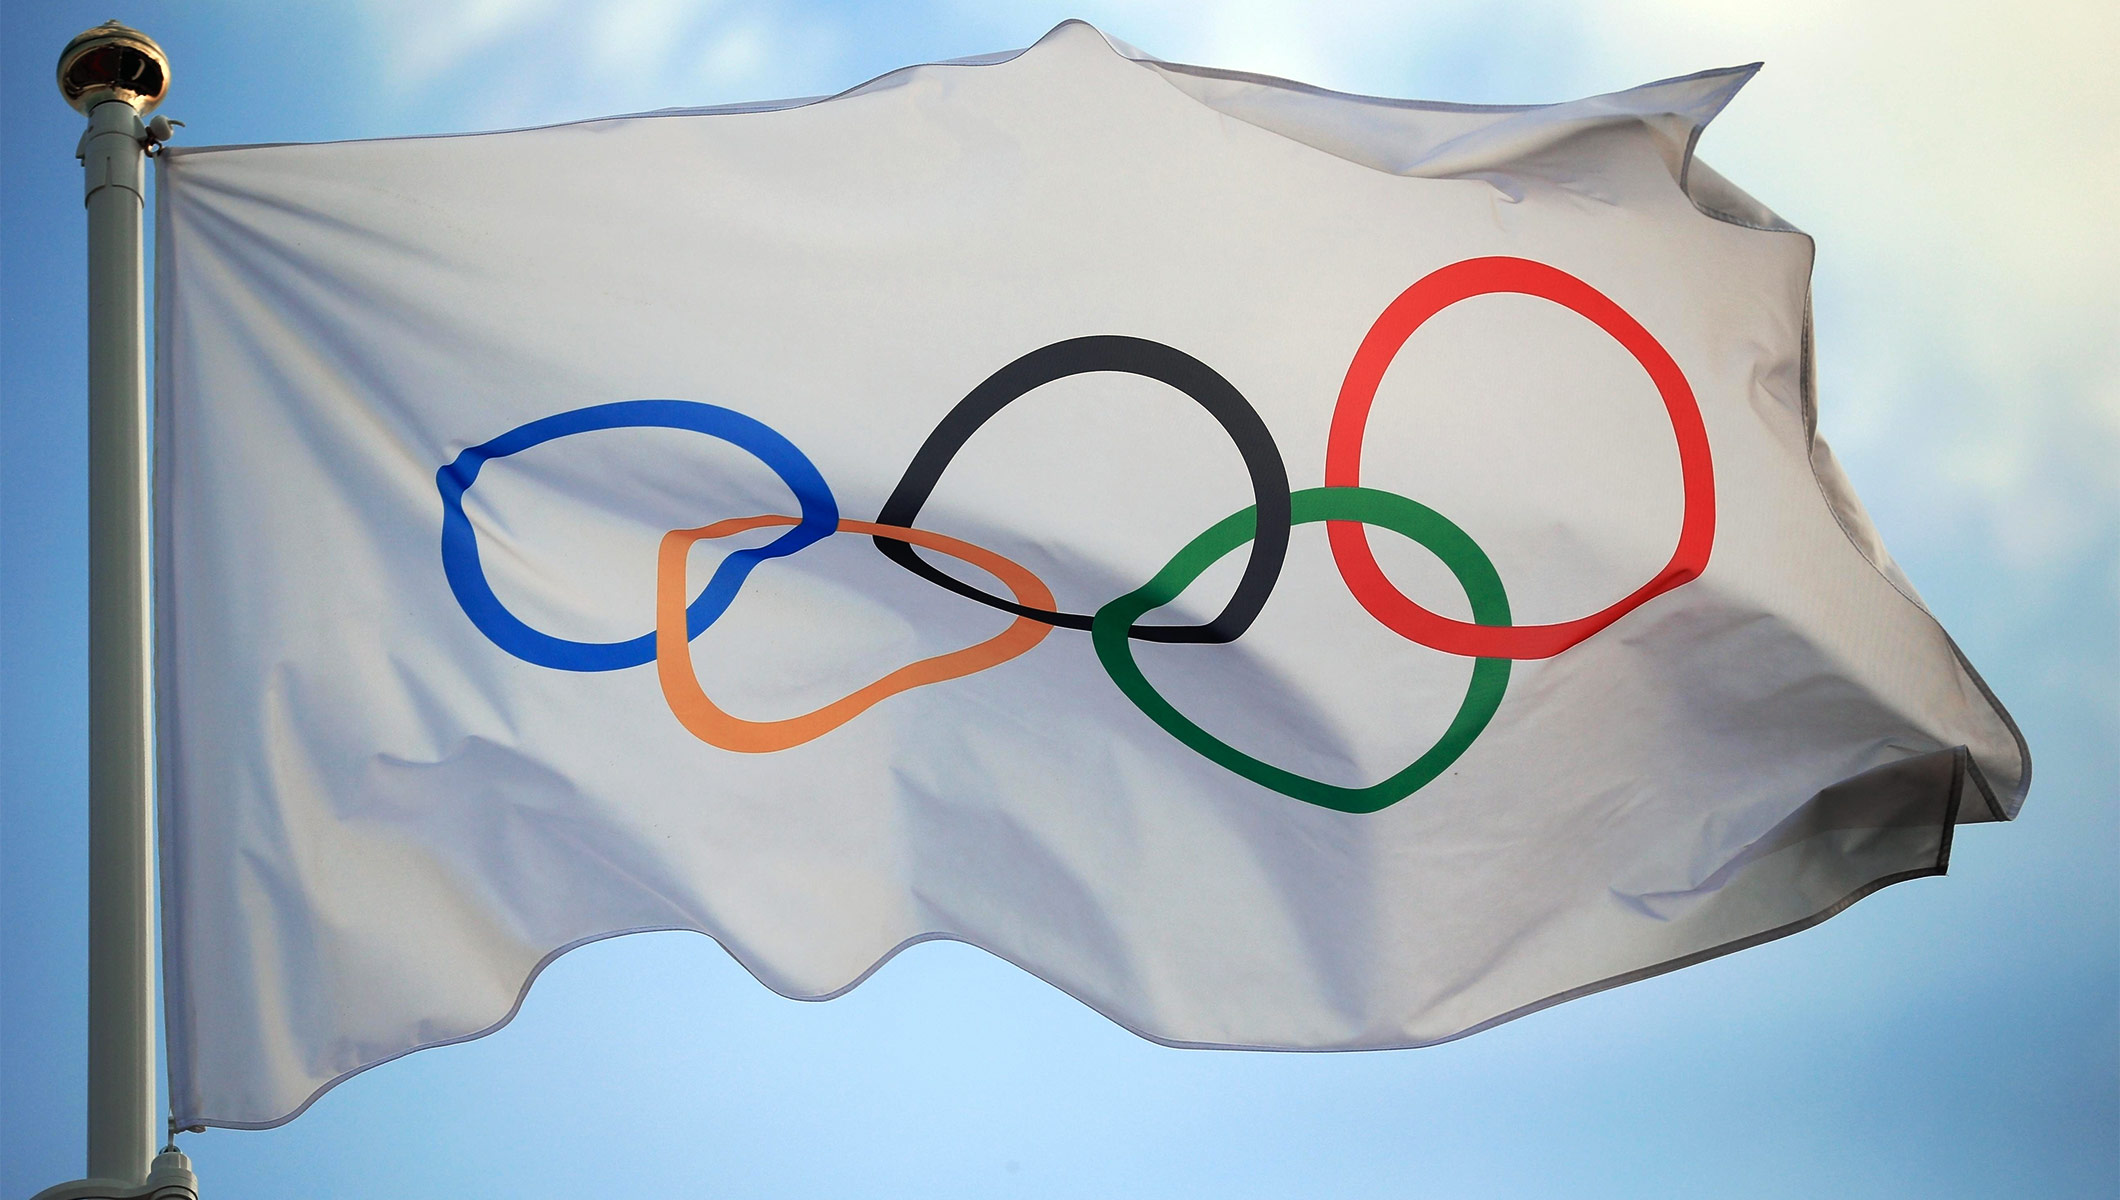 2026 Winter Olympics awarded to Italy's Milan and Cortina